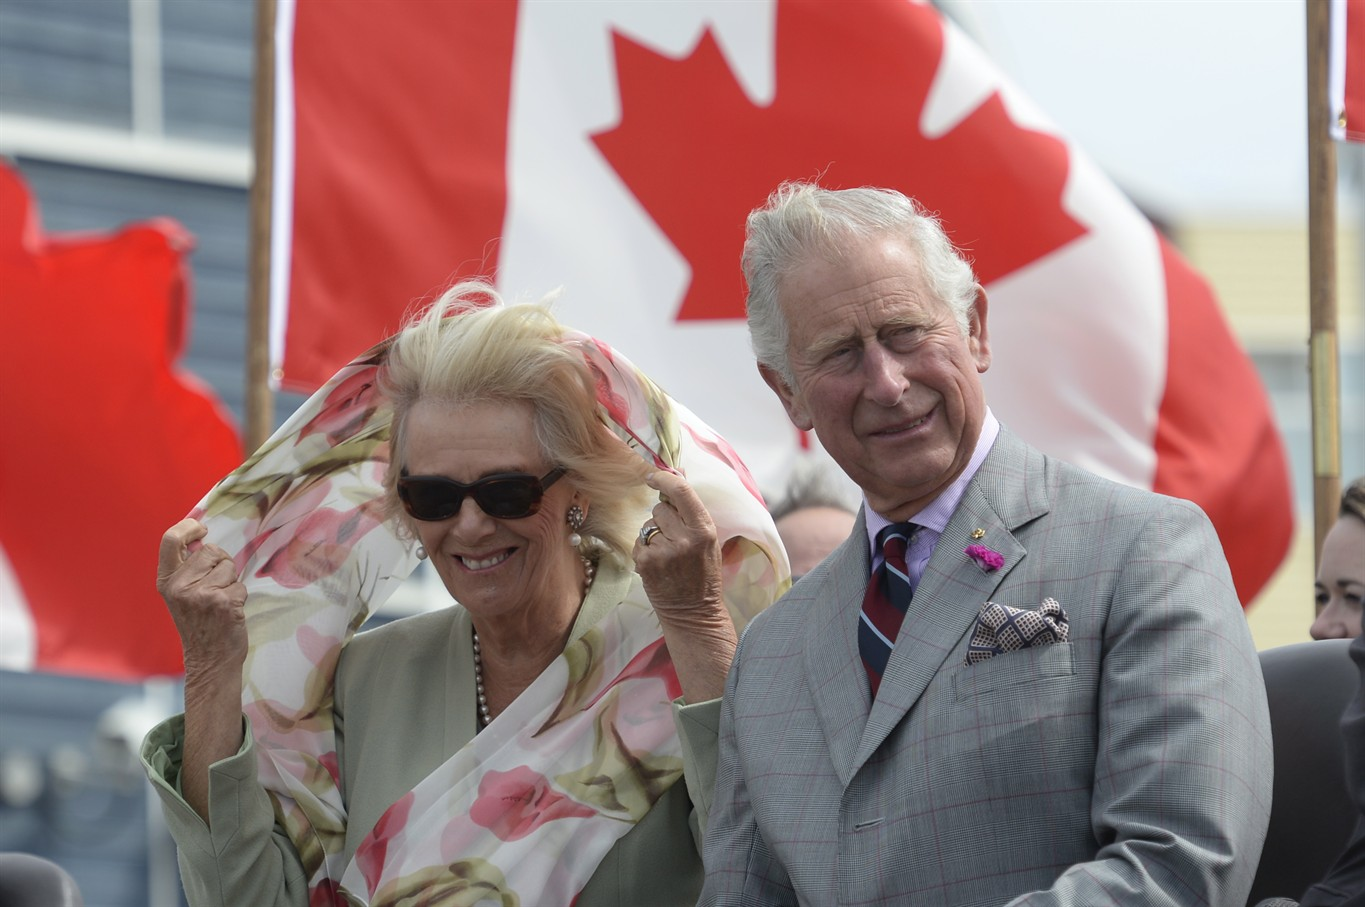 Prince Charles And Camilla Kick Off Canadian Tour In Iqaluit